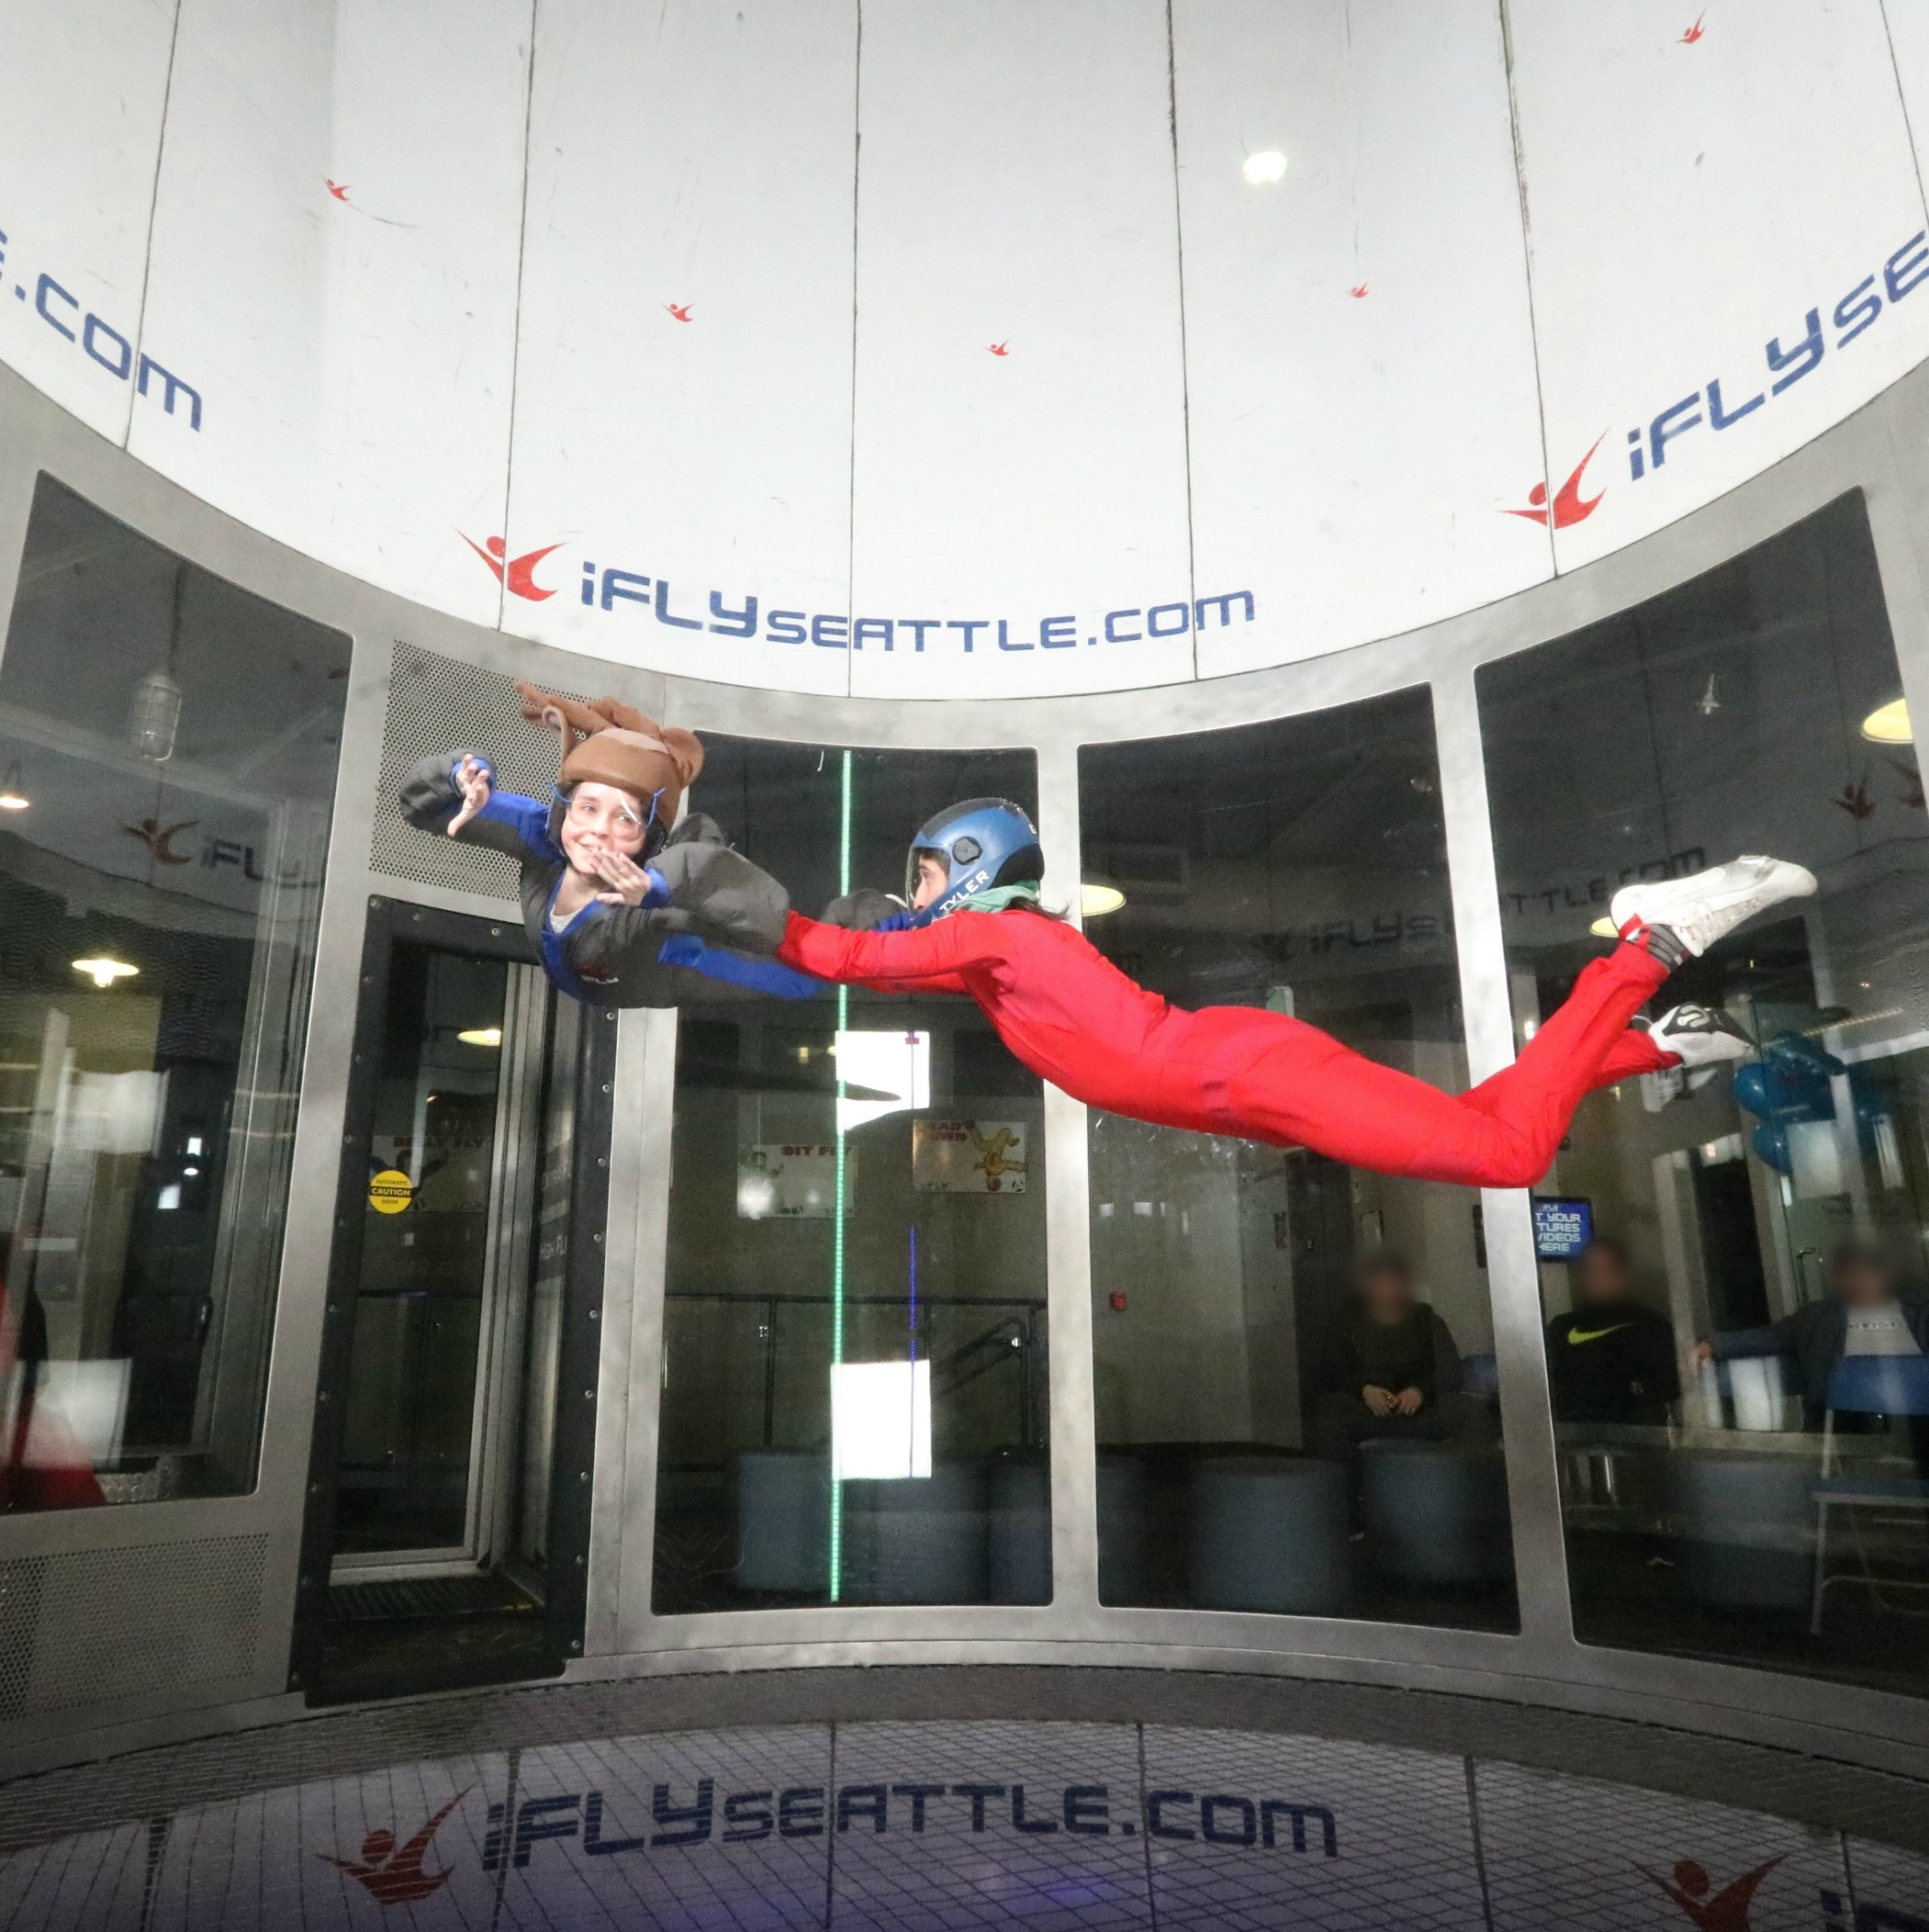 ifly seattle daughter